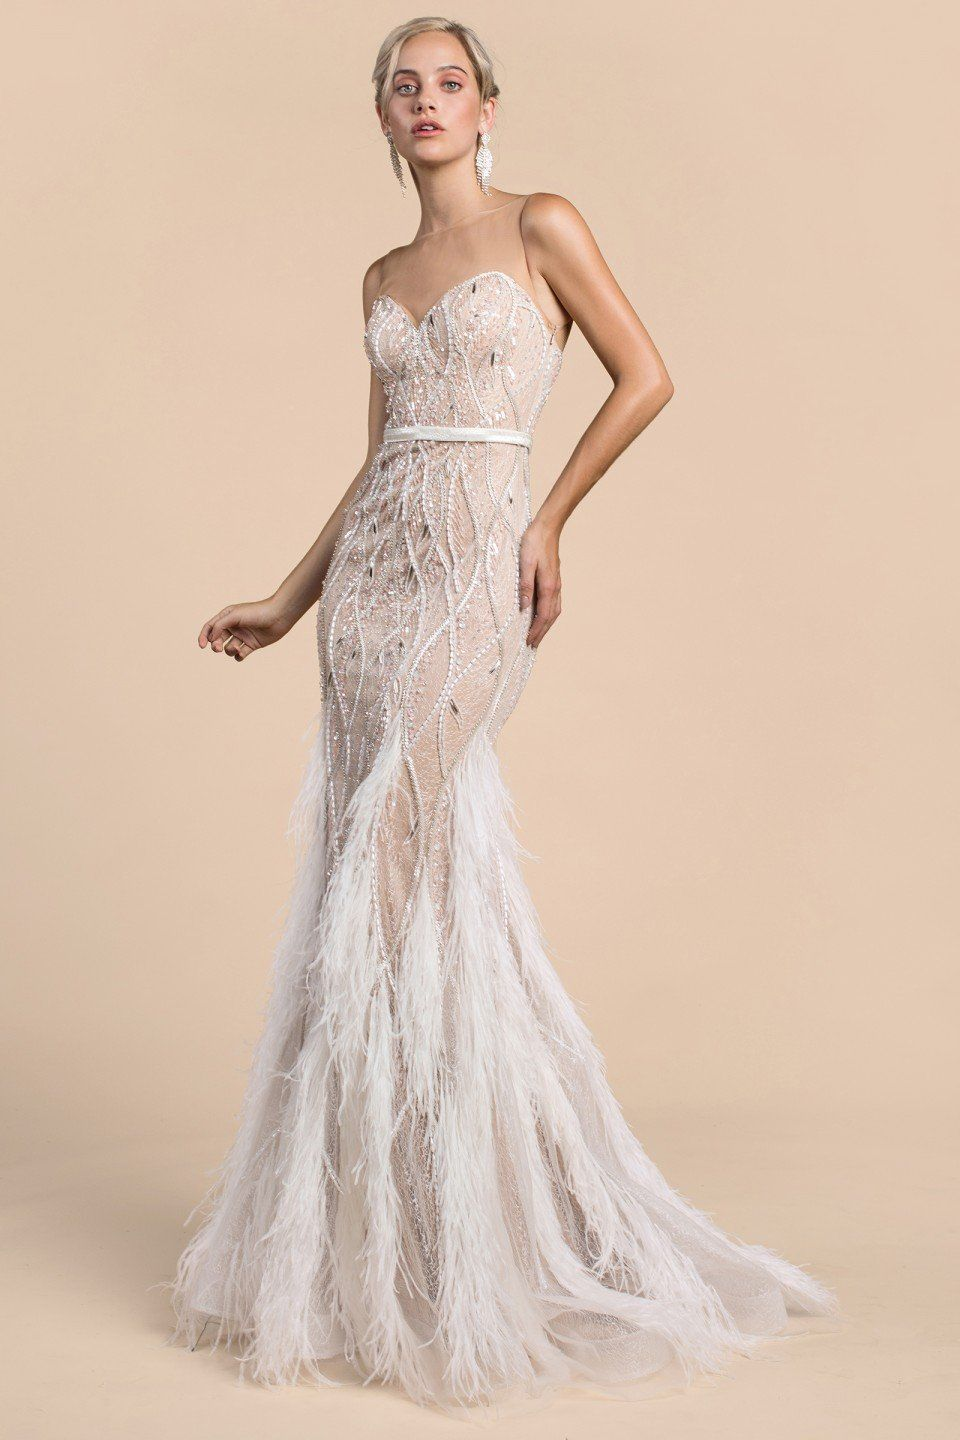 63131509705 Long embellished mermaid evening gown with sweetheart neck line and  feathers cascading down the skirt. Illusion neckline for support and can be  removed with ...